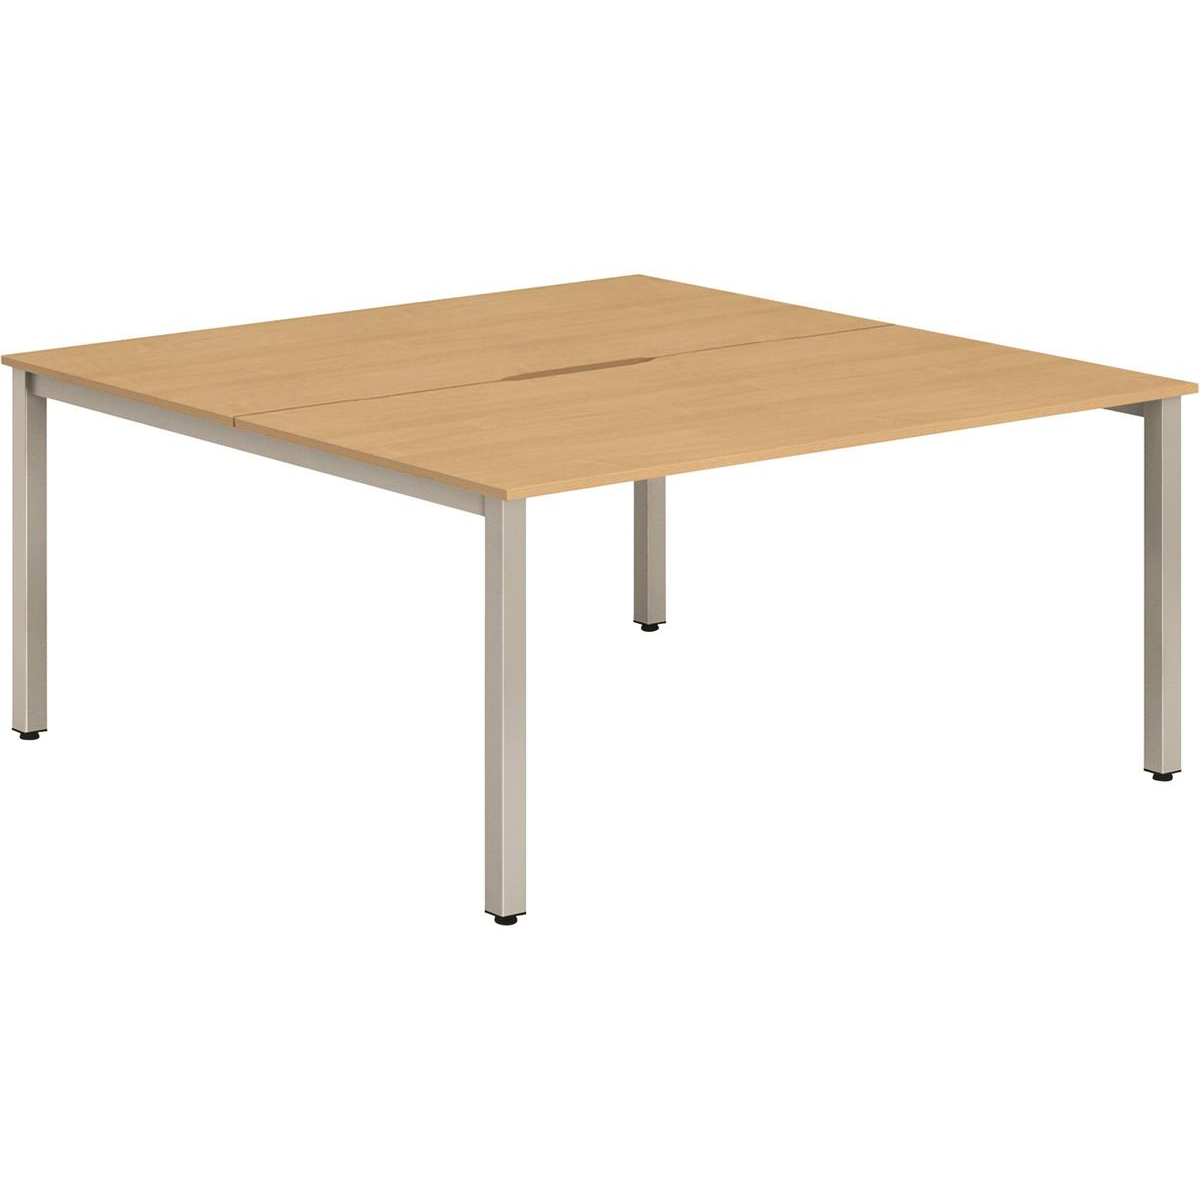 Trexus Bench Desk 2 Person Back to Back Configuration Silver Leg 1200x1600mm Beech Ref BE178